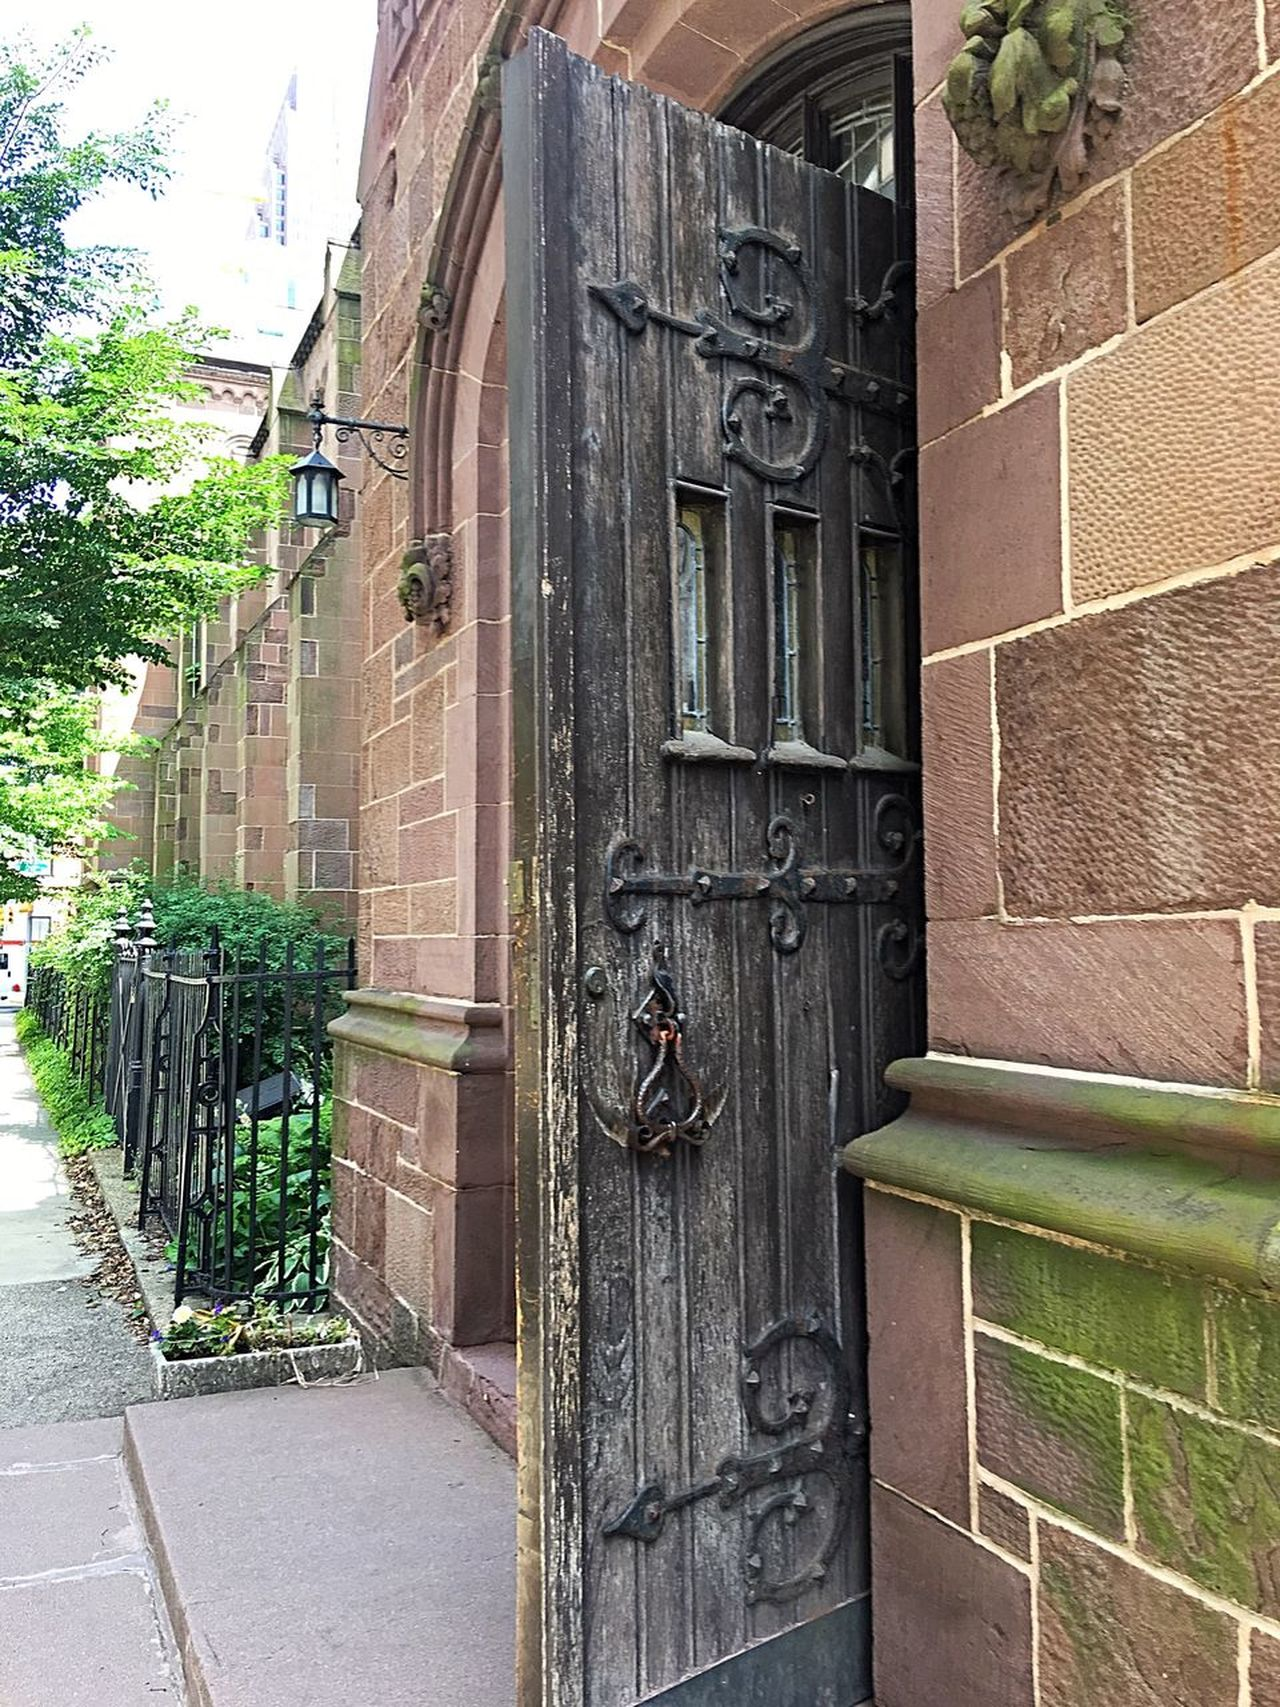 Door Outdoors Building Exterior Architecture Day No People Built Structure Close-up City Church Door Old Door Wooden Door Wood Door Old Wooden Door